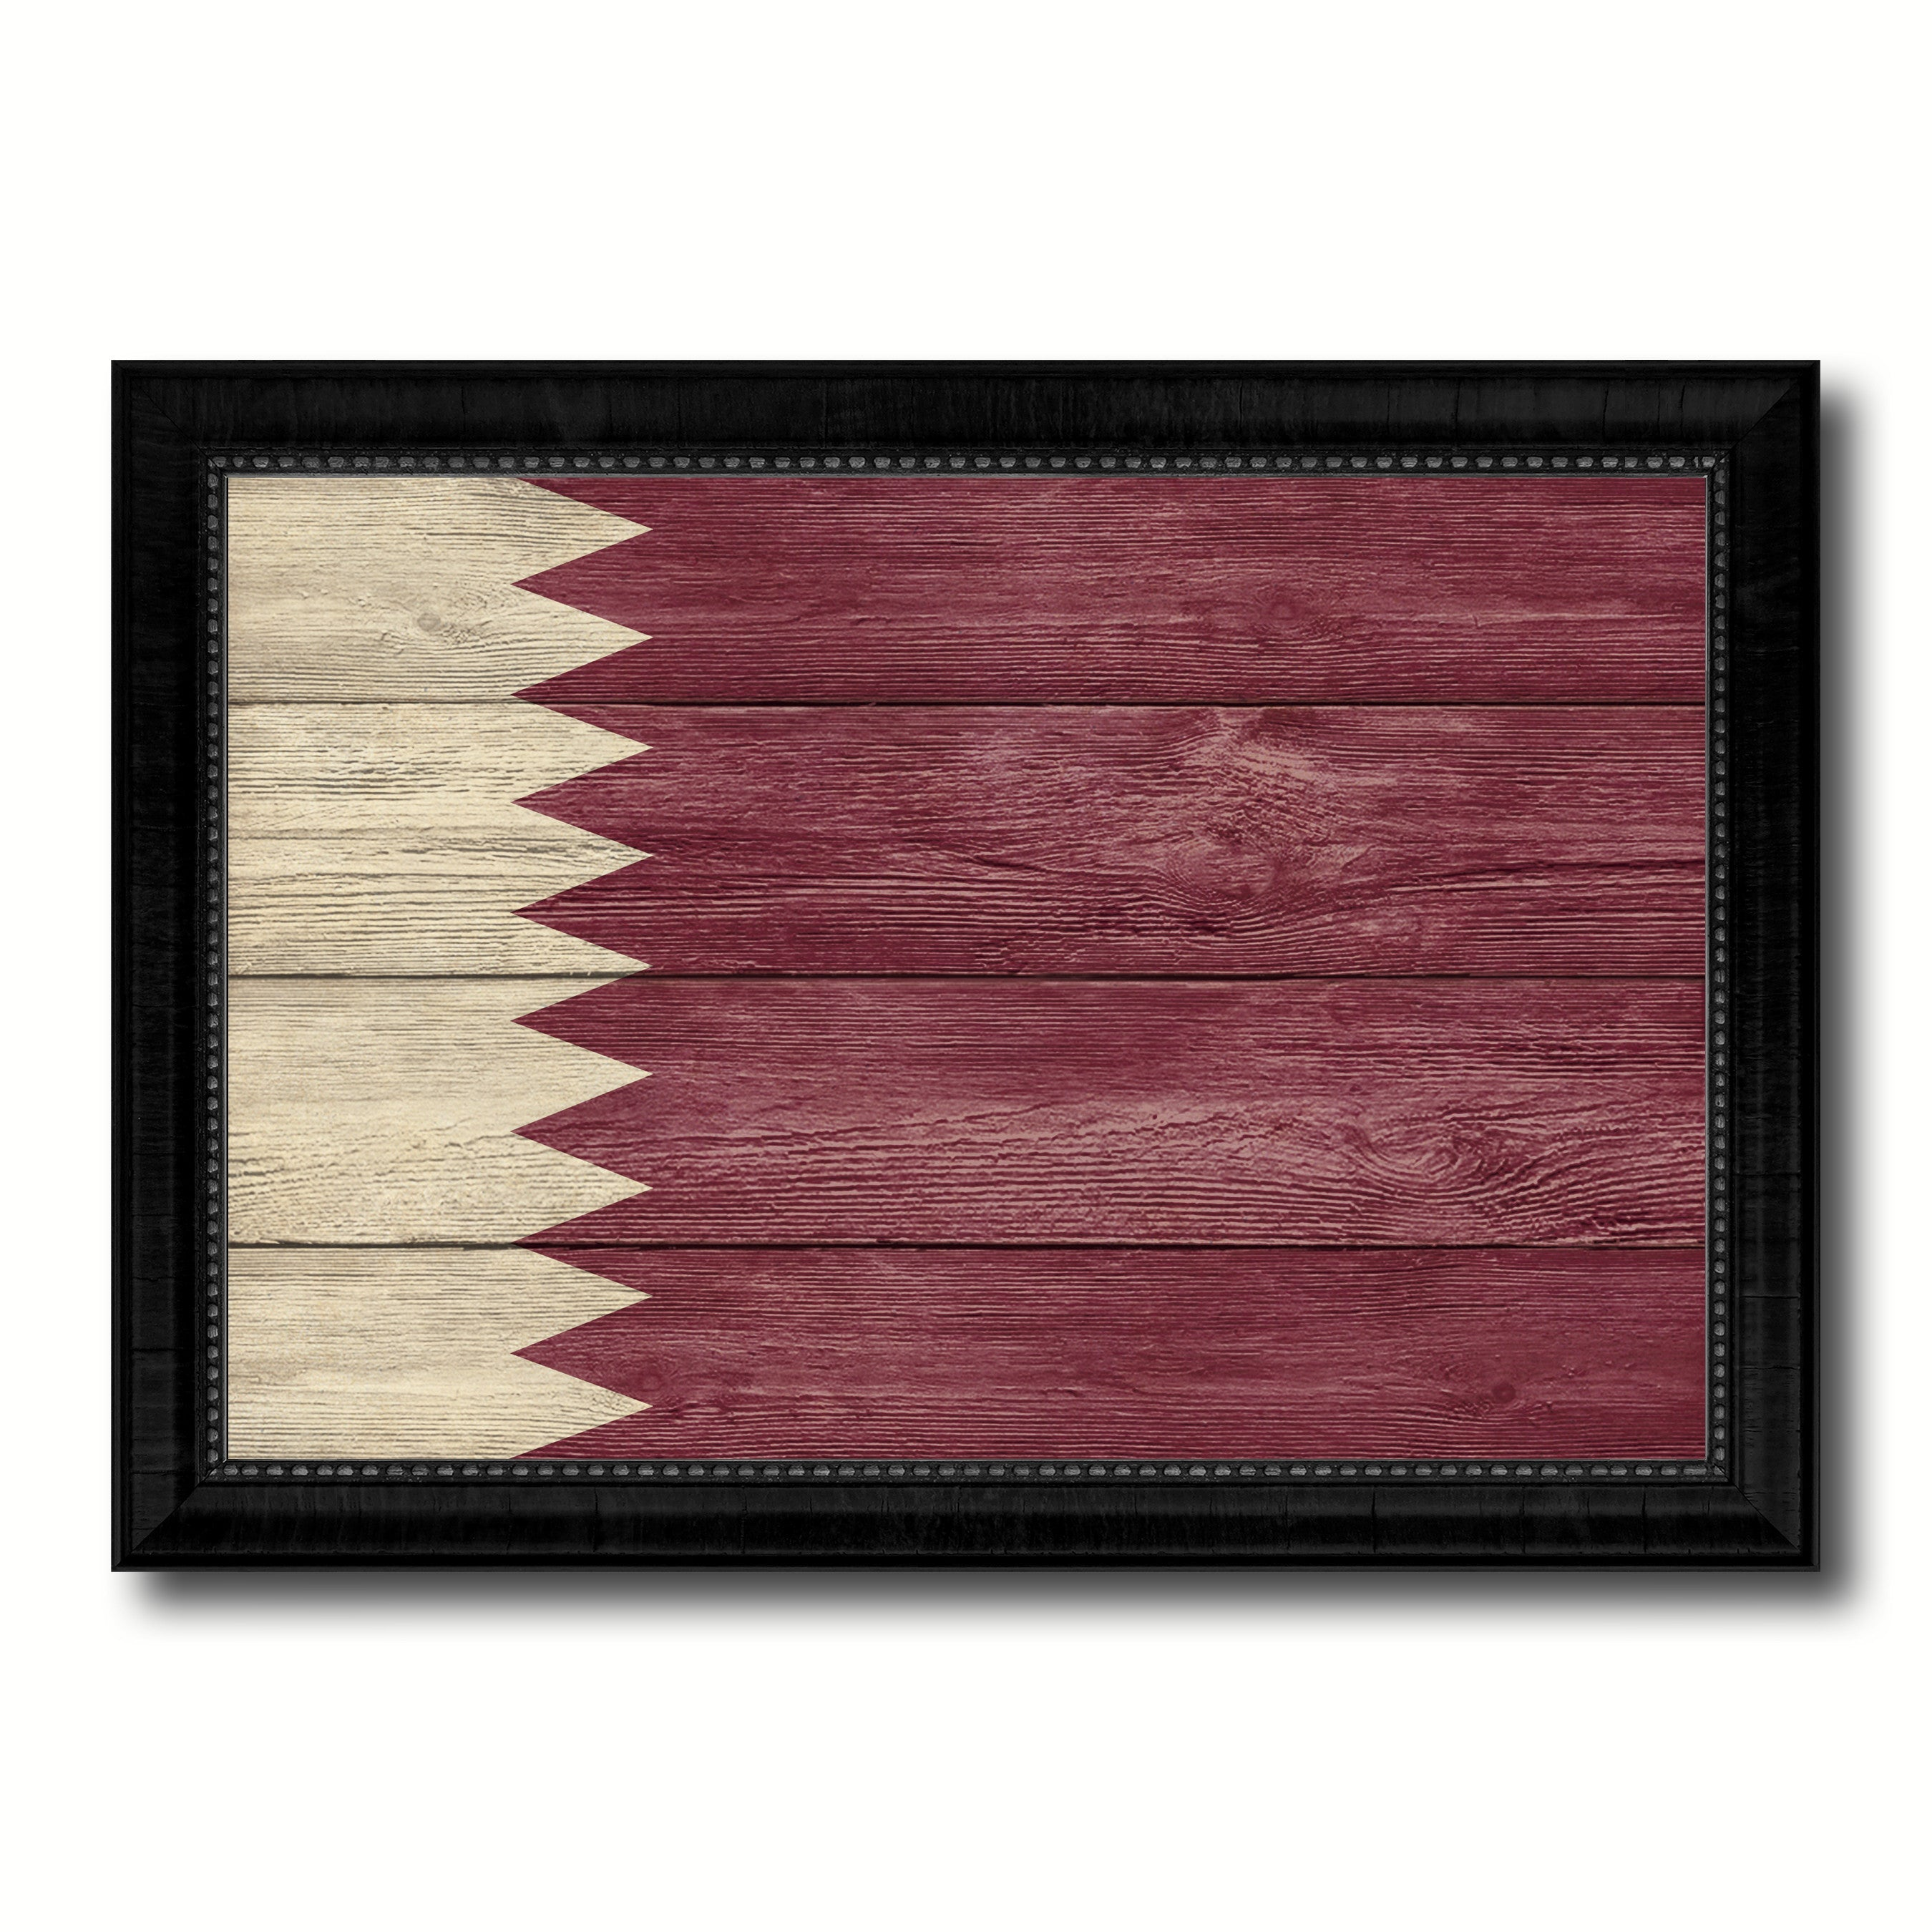 Qatar Country Flag Texture Canvas Print With Black Picture Frame Home Decor  Wall Art Decoration Collection Gift Ideas